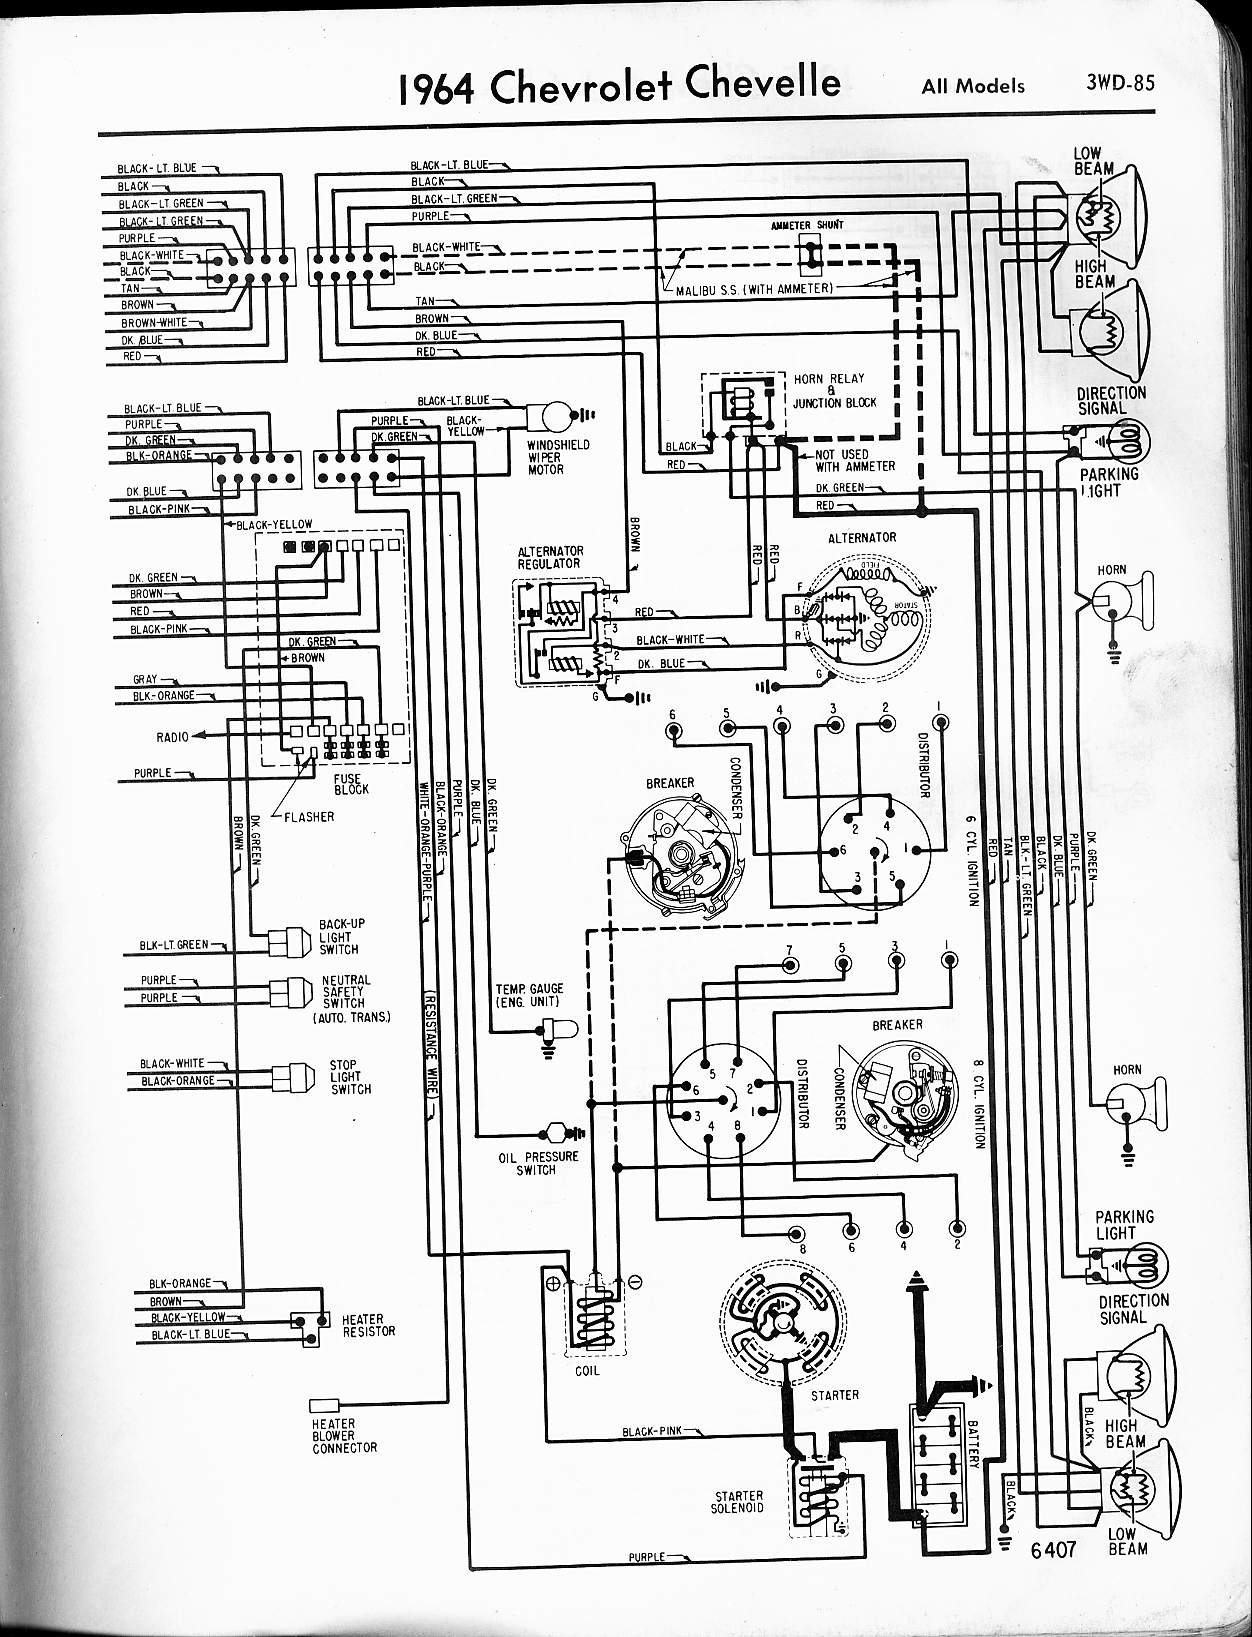 Magnificent Wiring Harness 1964 El Camino Basic Electronics Wiring Diagram Wiring Cloud Ostrrenstrafr09Org